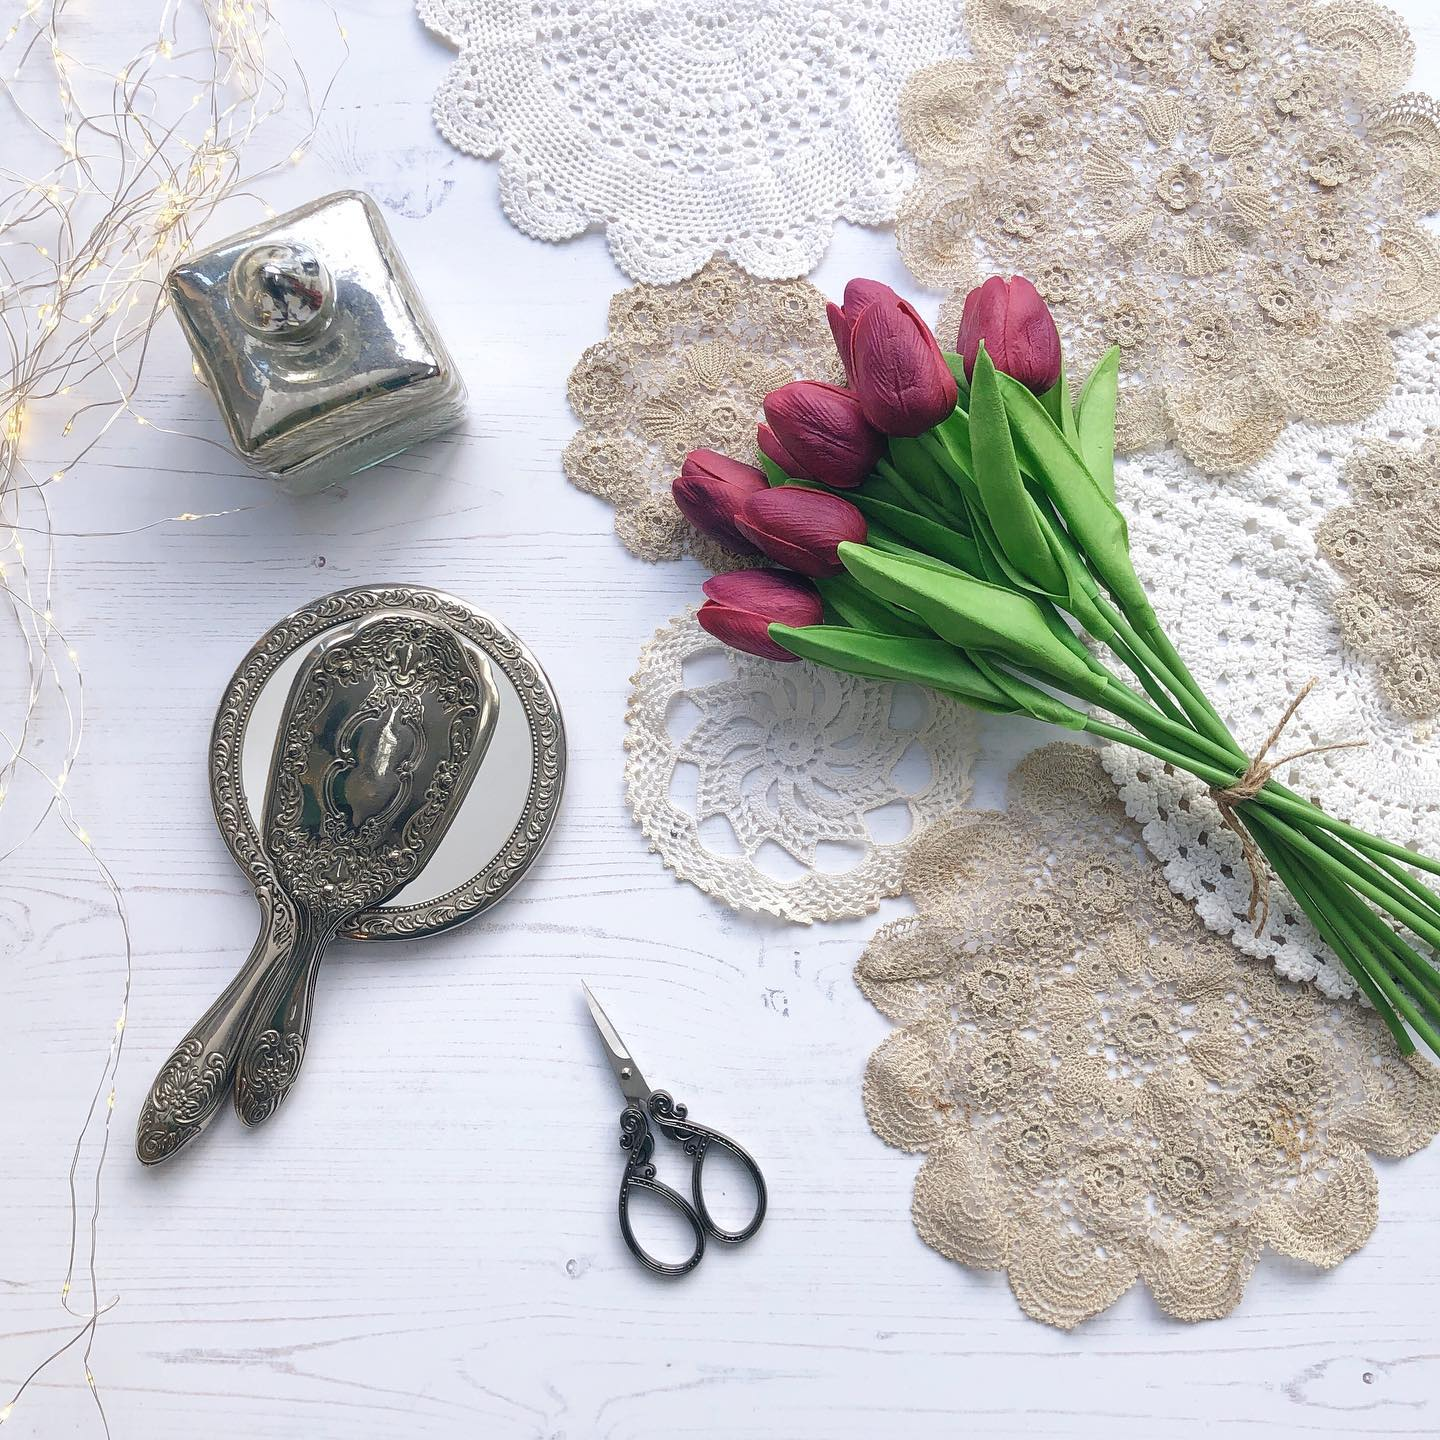 Tulips, lace and vintage finds